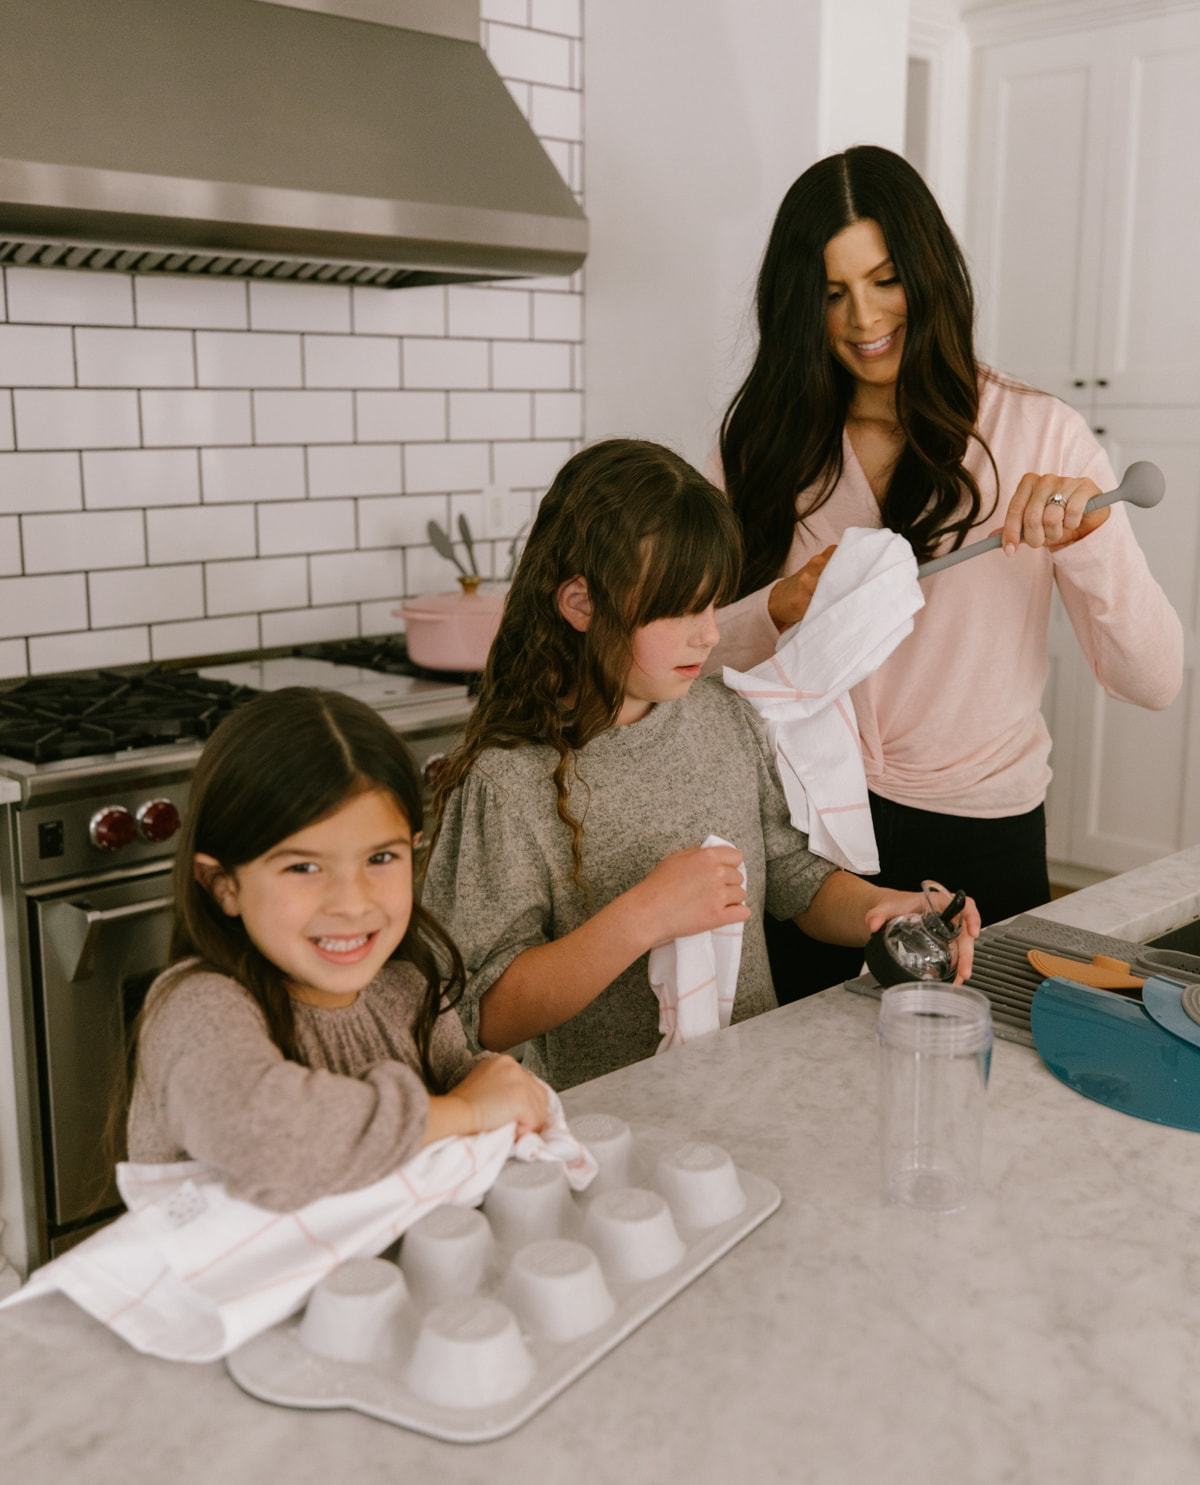 nordstrom healthy eating tools kitchen